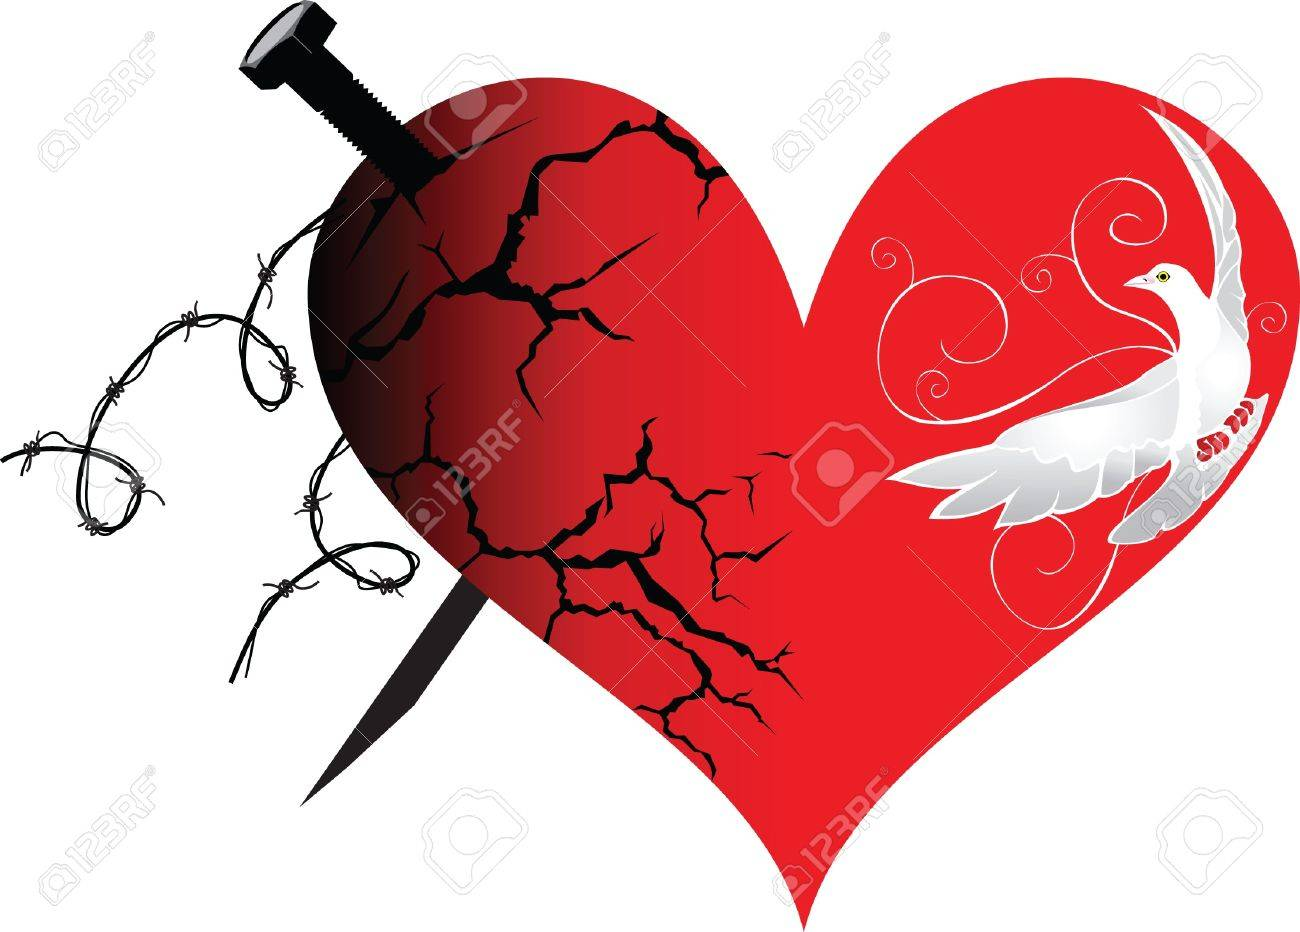 The heart in good and evil - 9811041